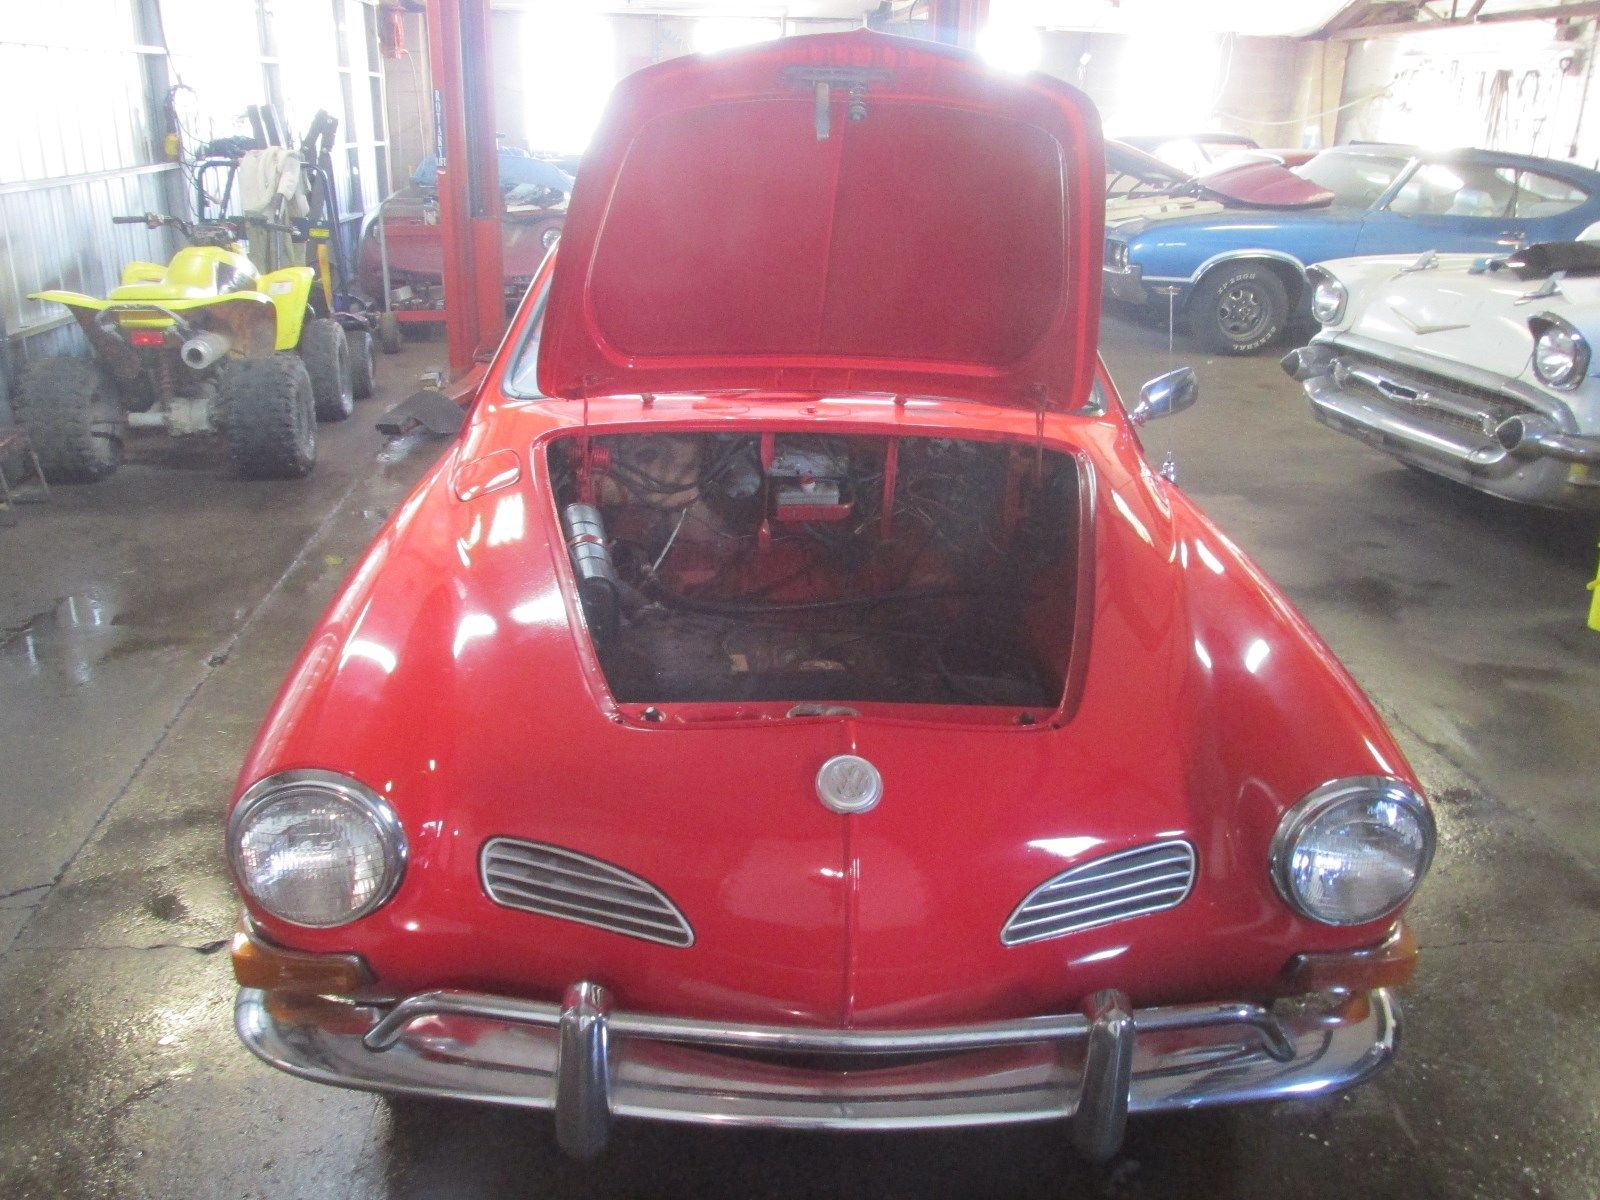 w sale volkswagen ghia for karmann max coupe m h man